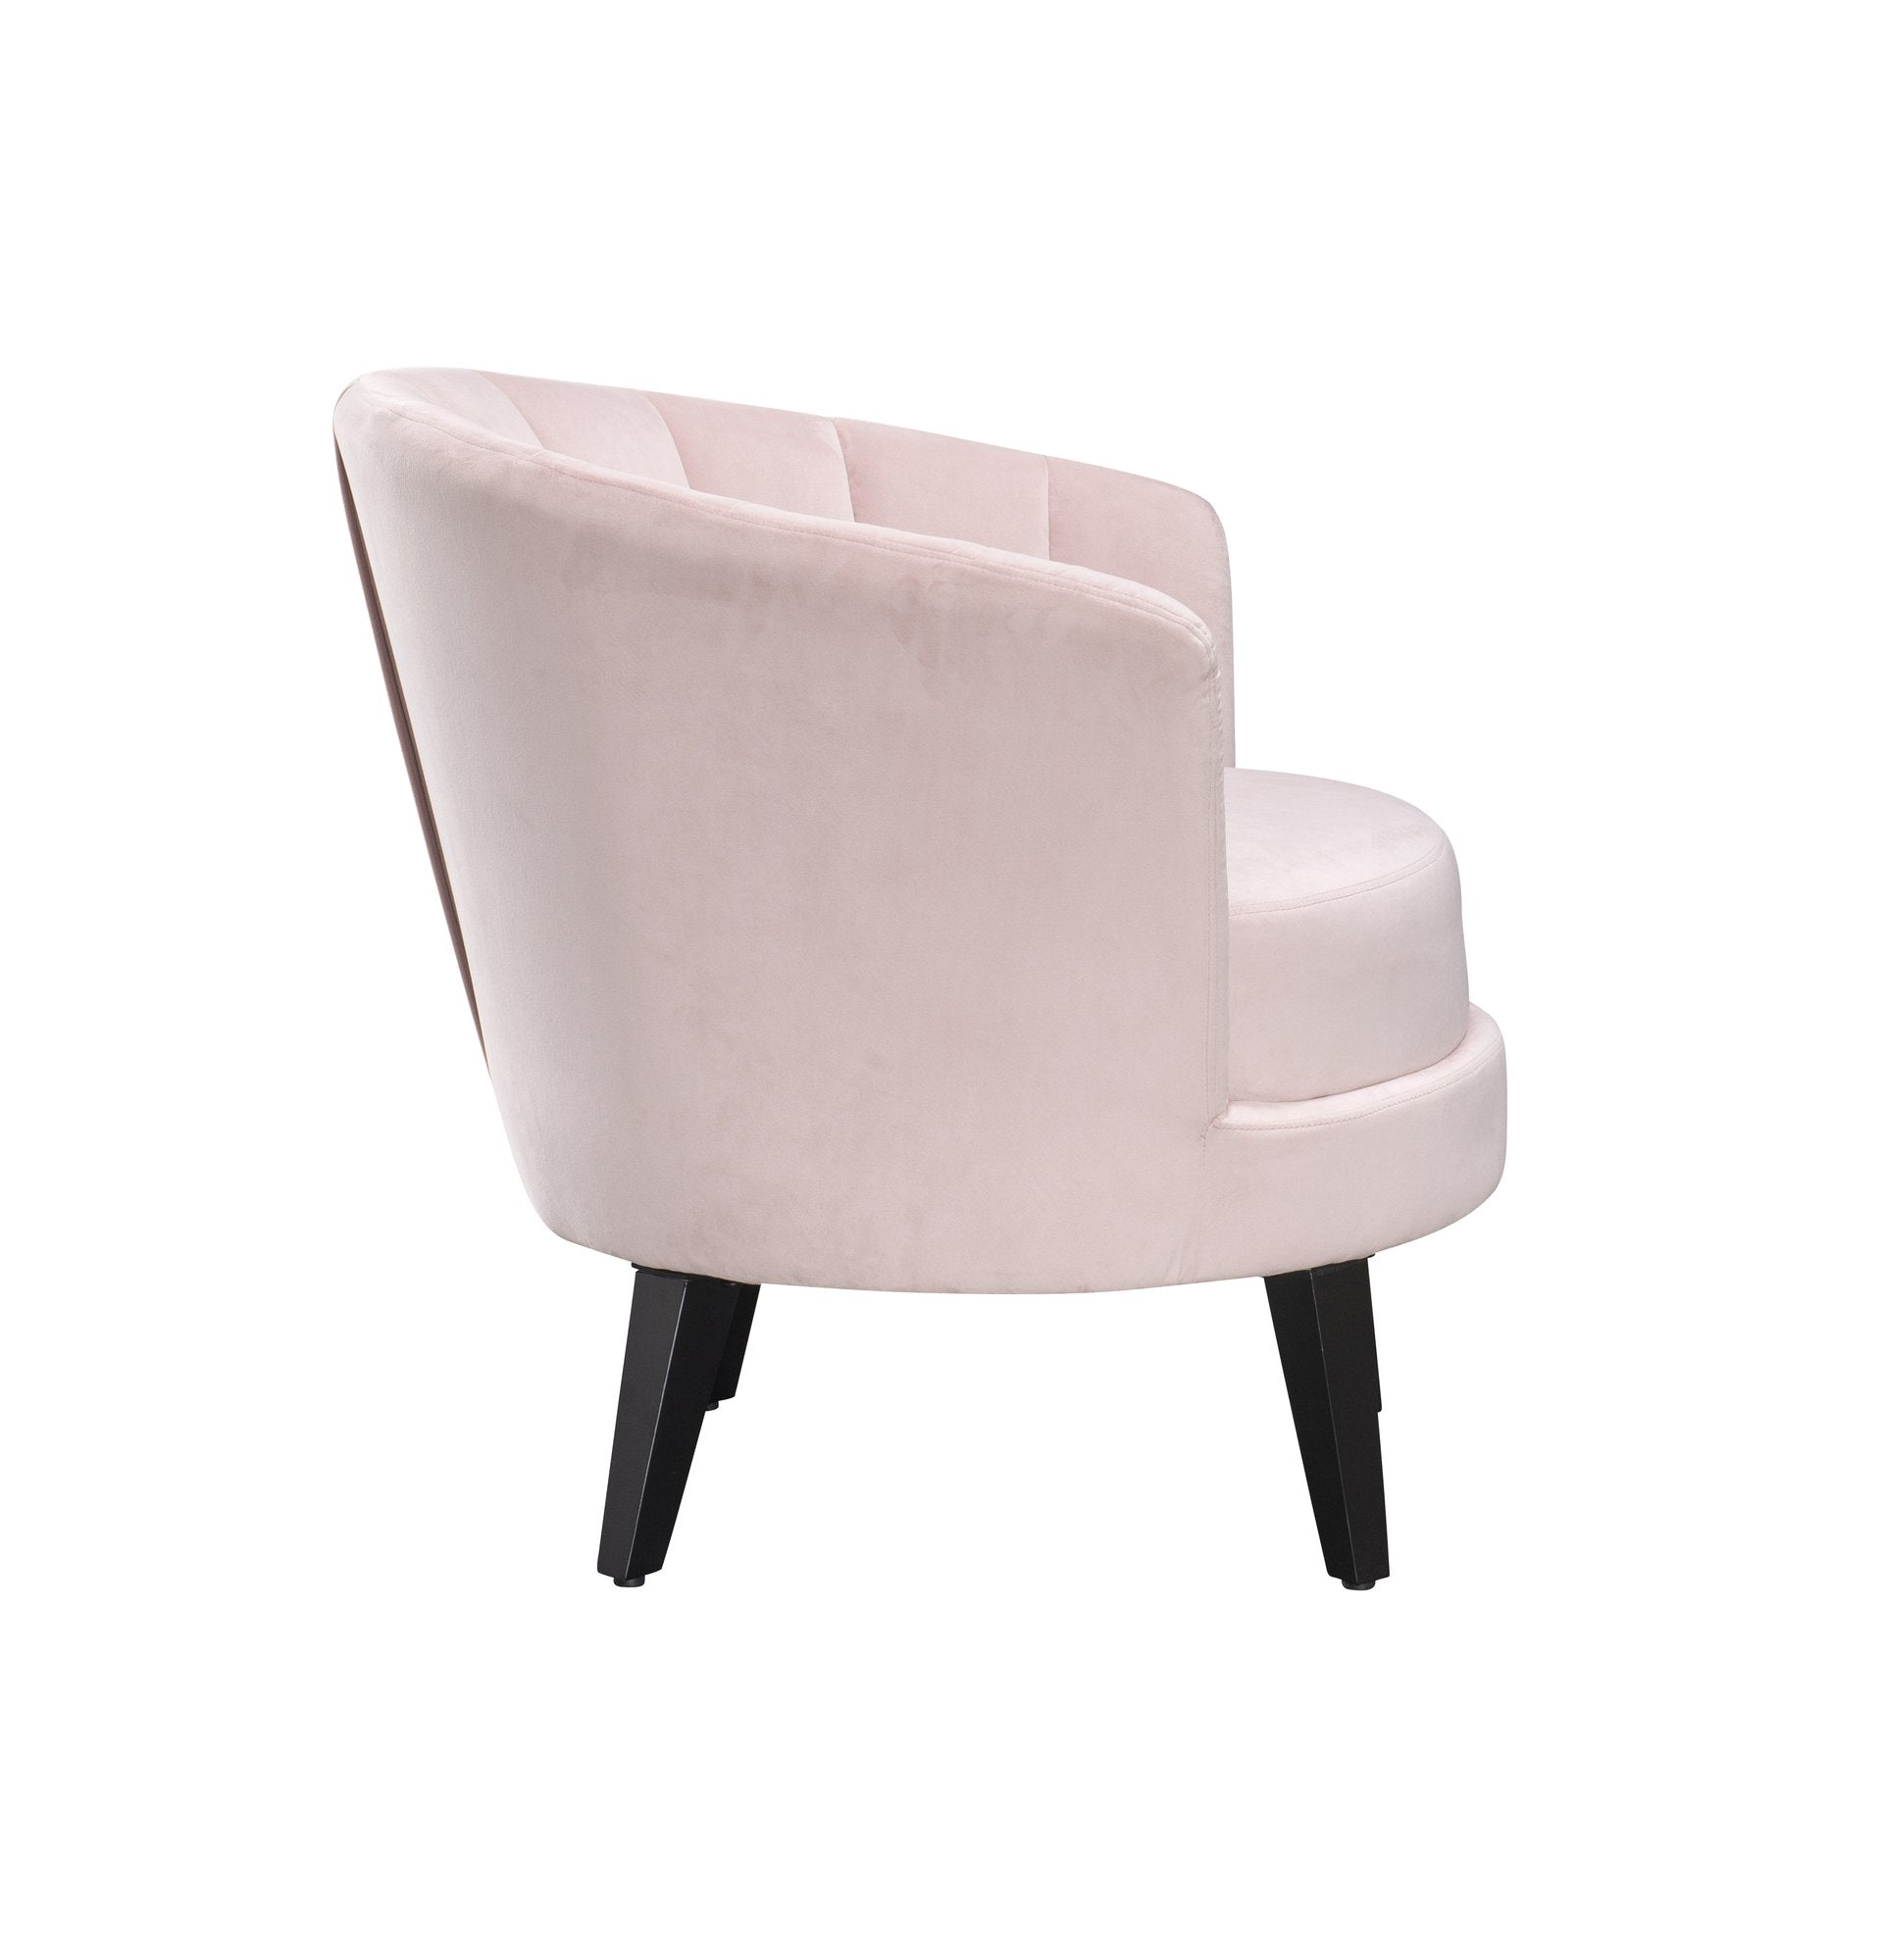 Groovy Merlot Chair Pastel Pink Ncnpc Chair Design For Home Ncnpcorg